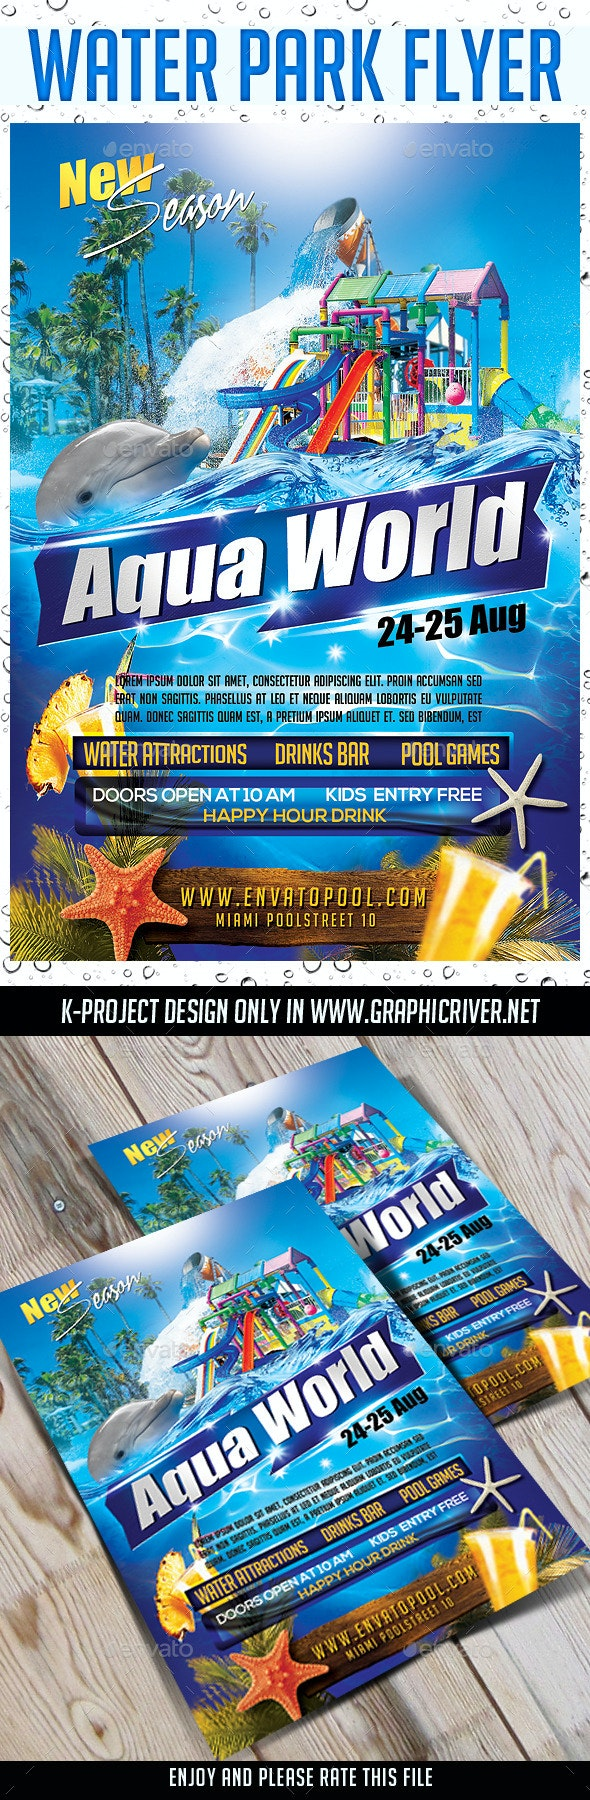 Water Park Flyer - Events Flyers